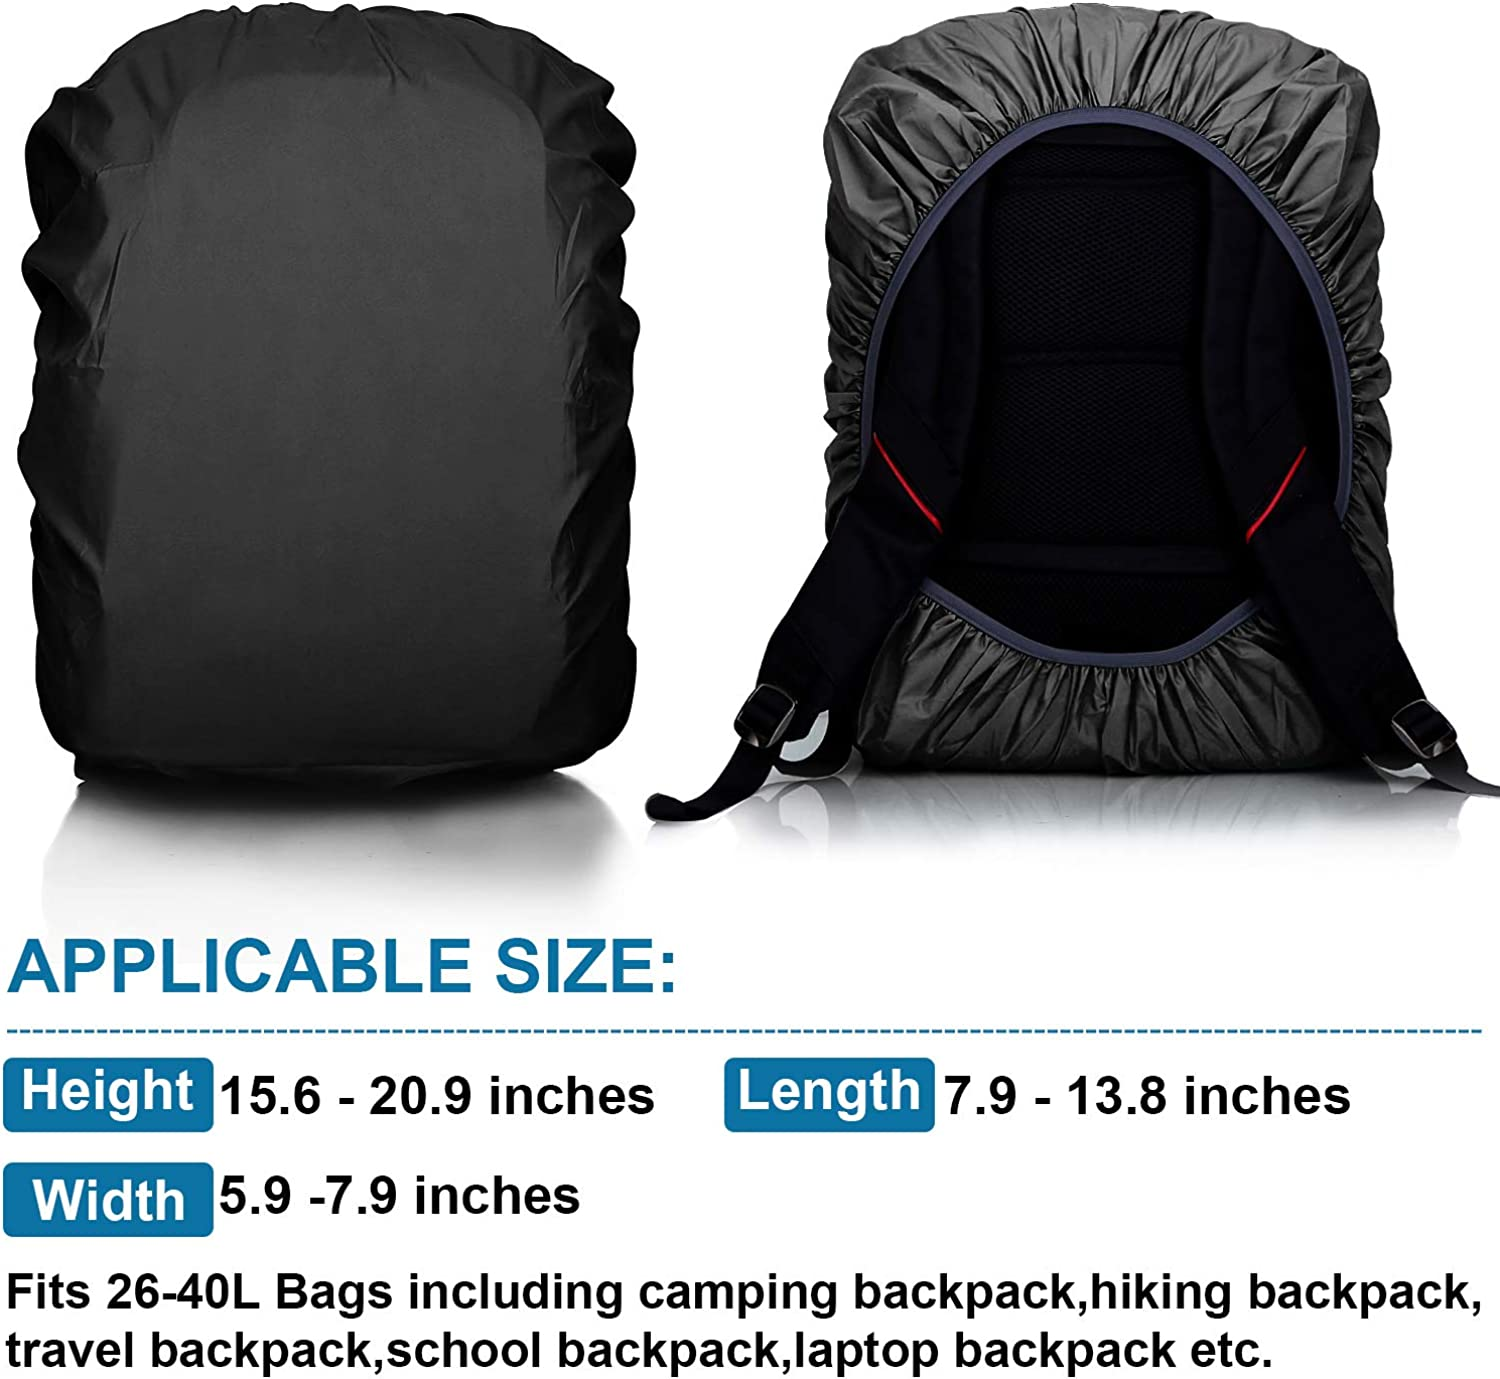 Reflective Backpack Rain Cover JOOPOM Waterproof Rucksack Cover Rainproof Cycle Bag Cover with Adjustable Chest Strap for Camping Hiking Cycling Jogging Traveling Outdoor Activities